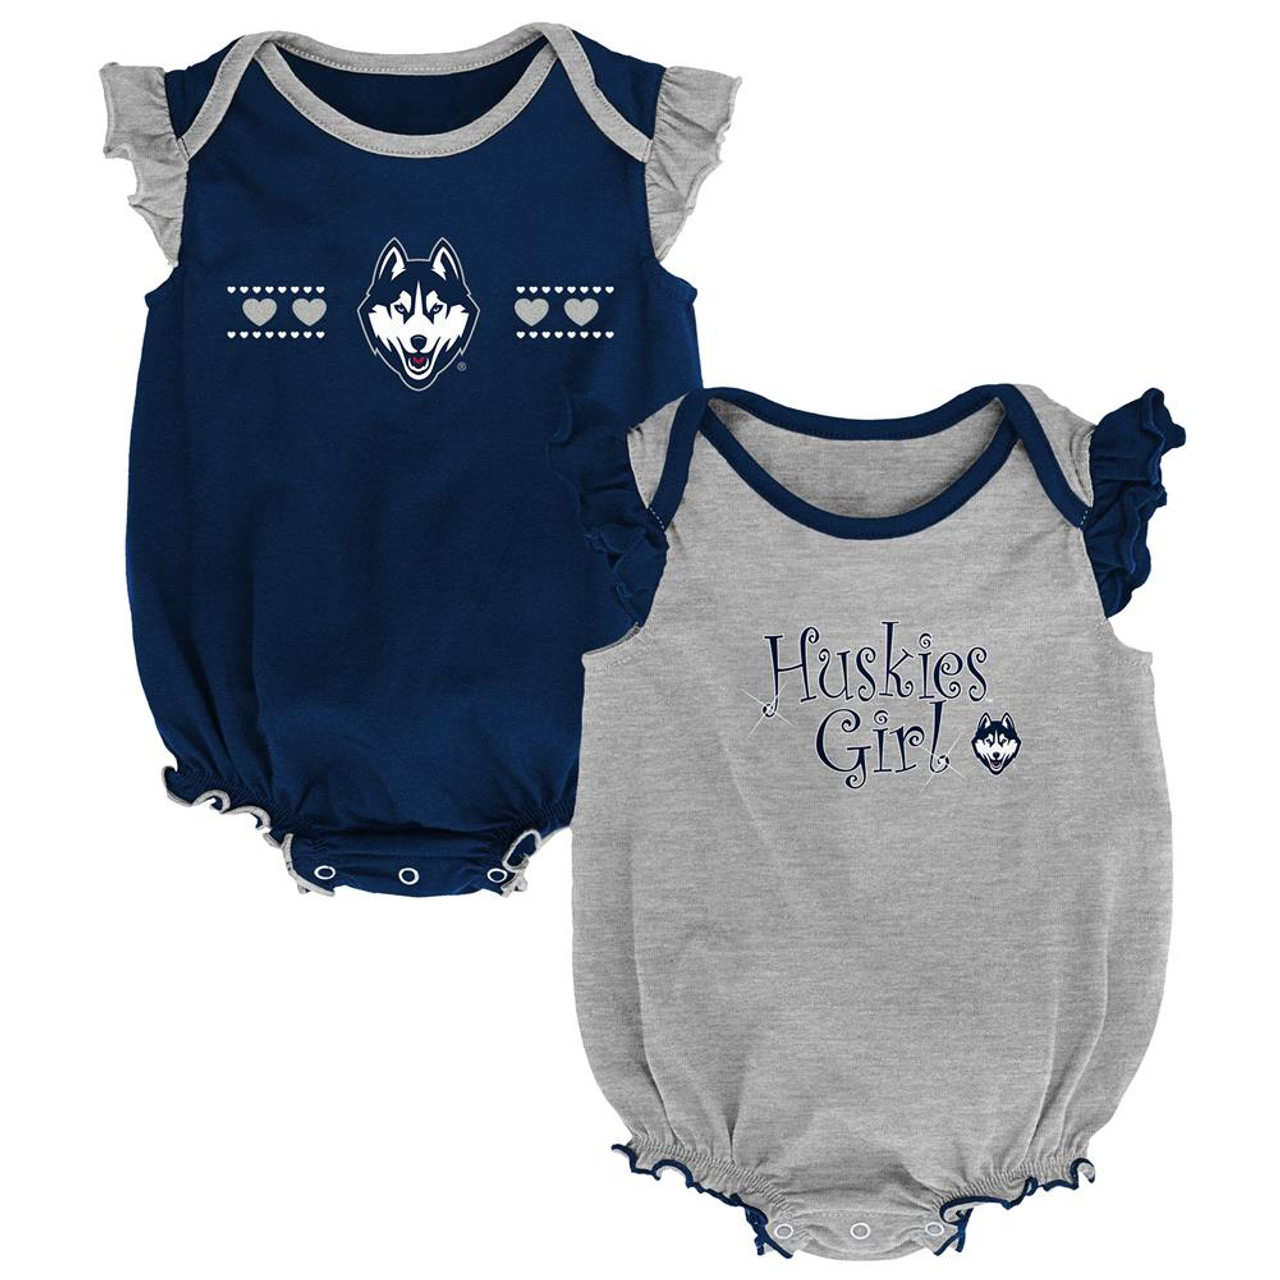 UCONN Connecticut Huskies Creeper 2 Pack Homecoming Bodysuit Set